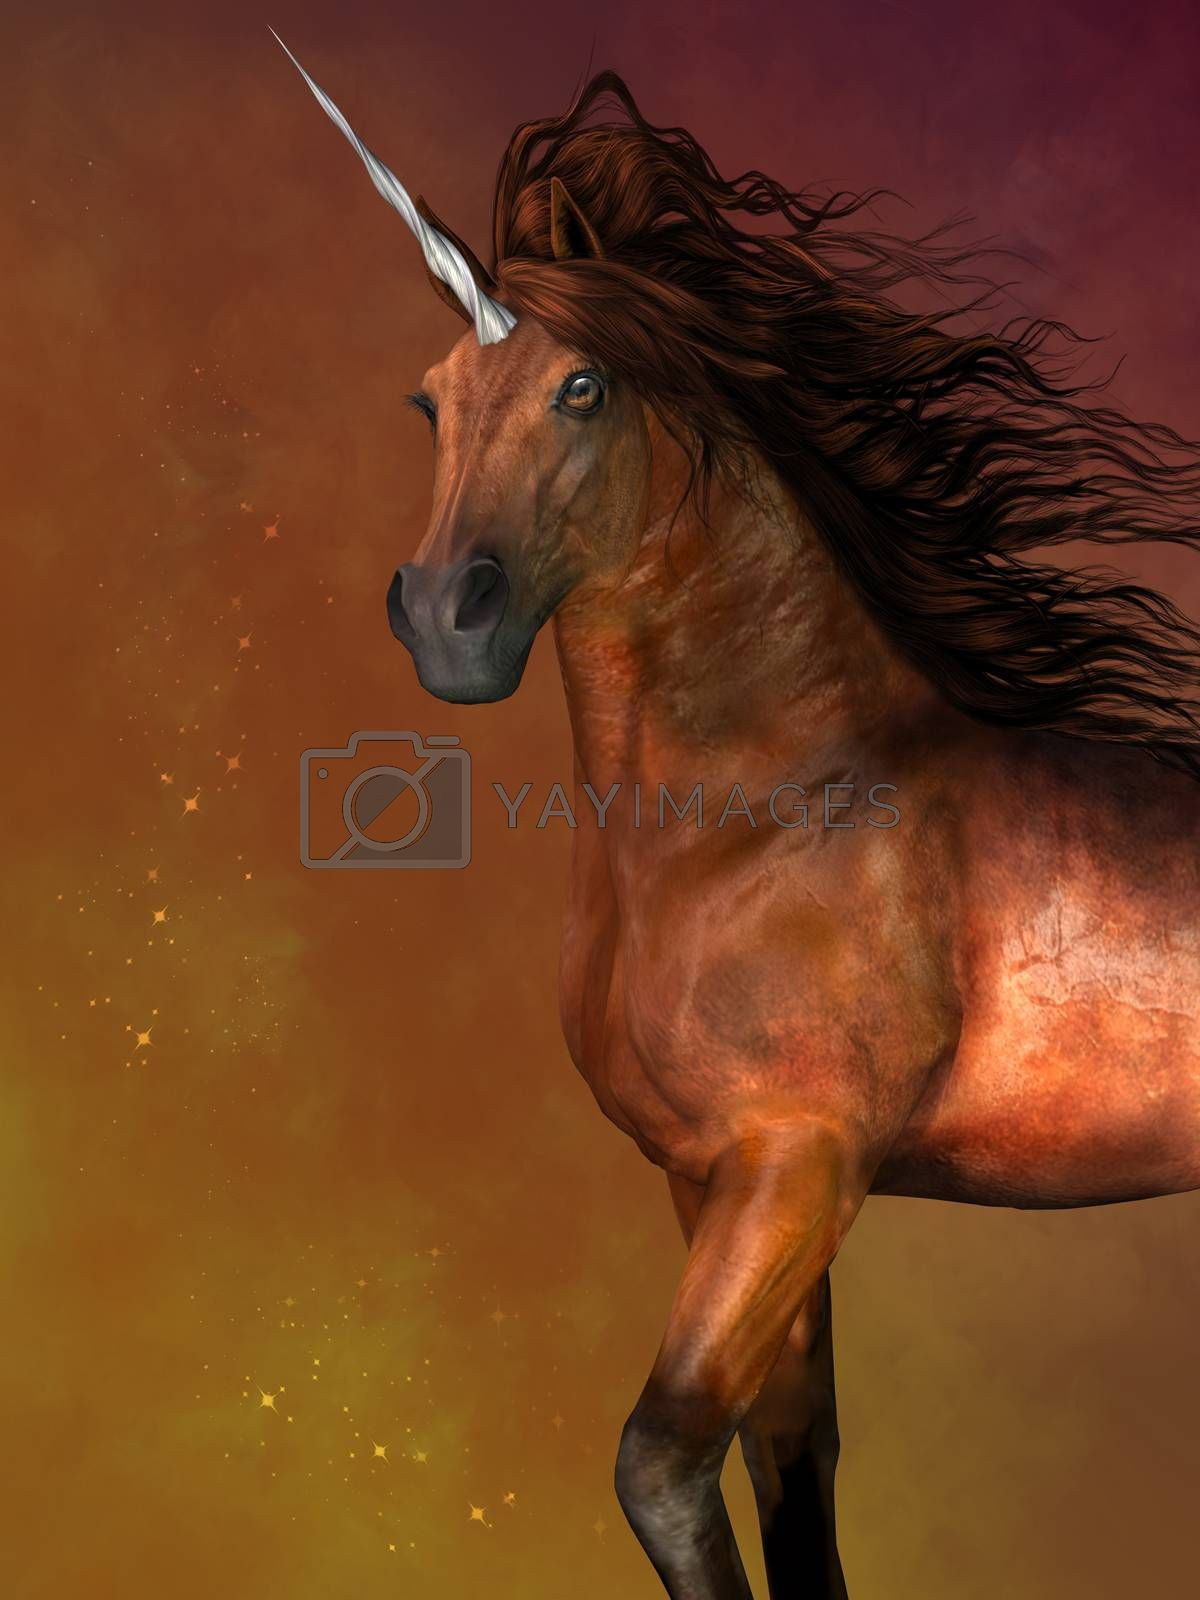 A unicorn is a mythological creature that has the body of a horse and a magical horn on its forehead.